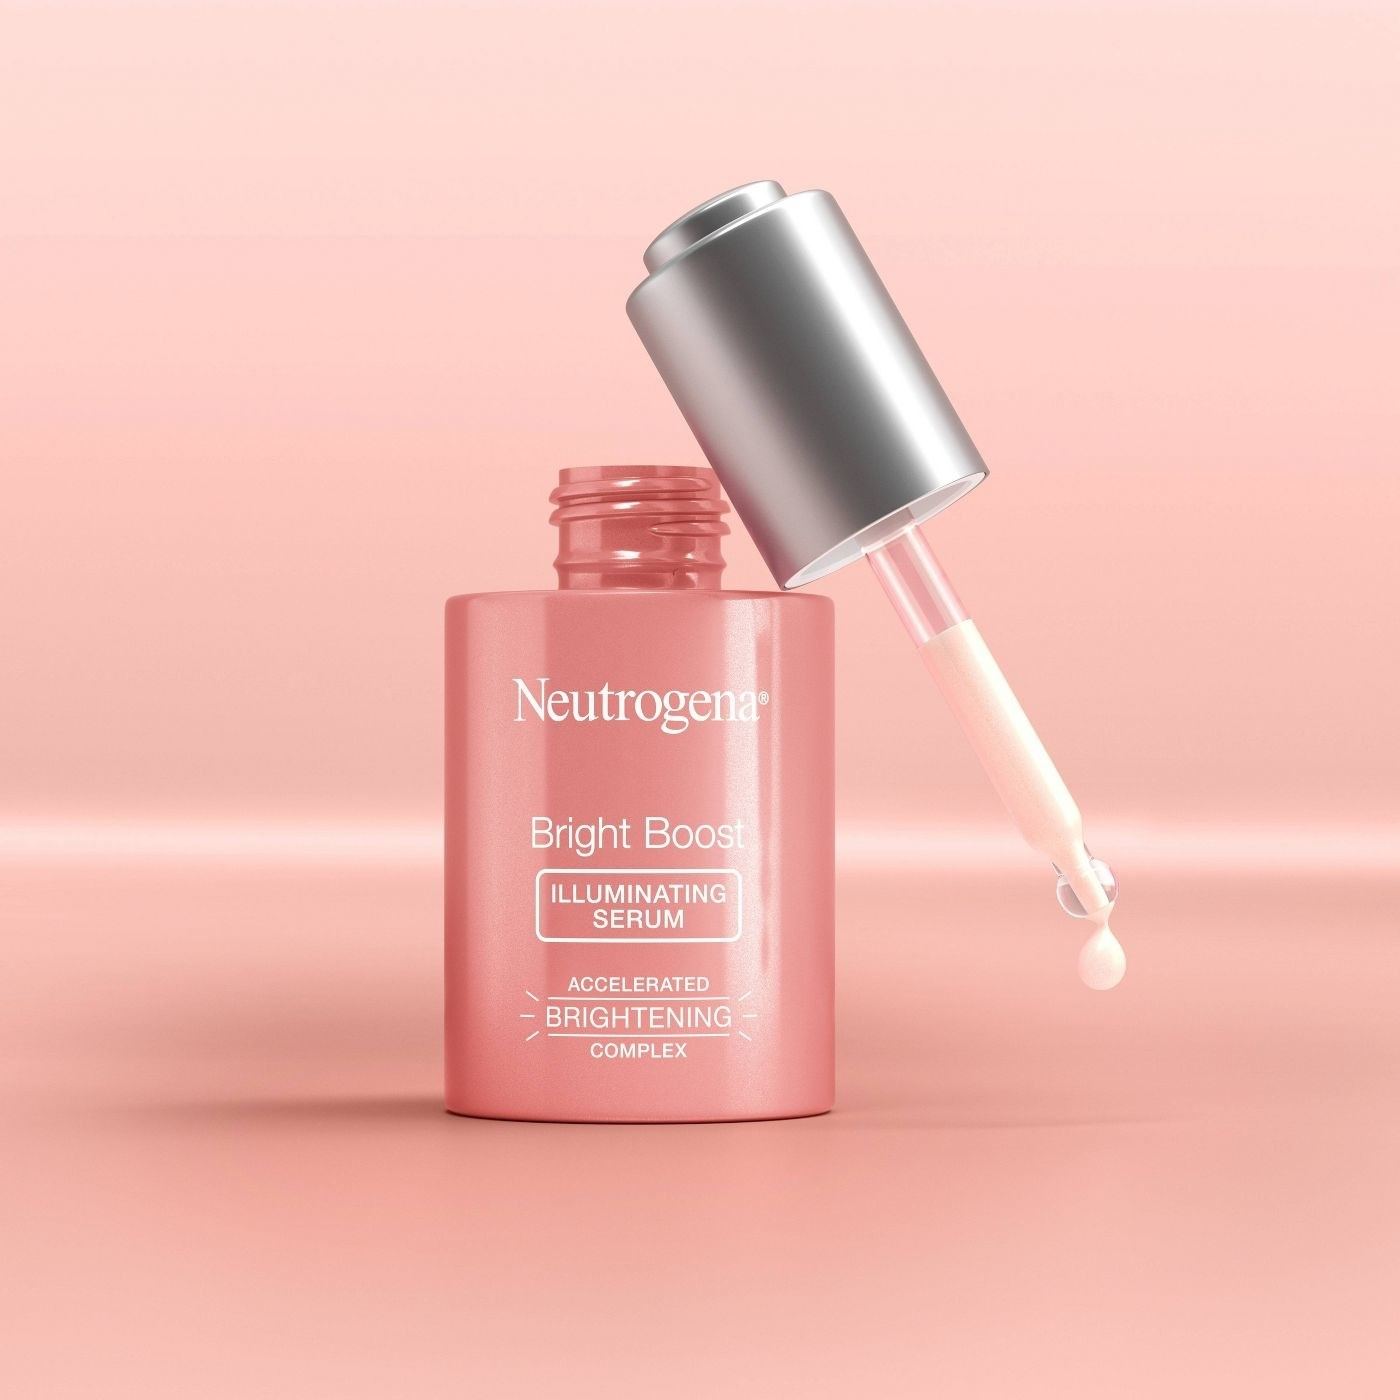 A pink bottle of facial serum on a pink backdrop